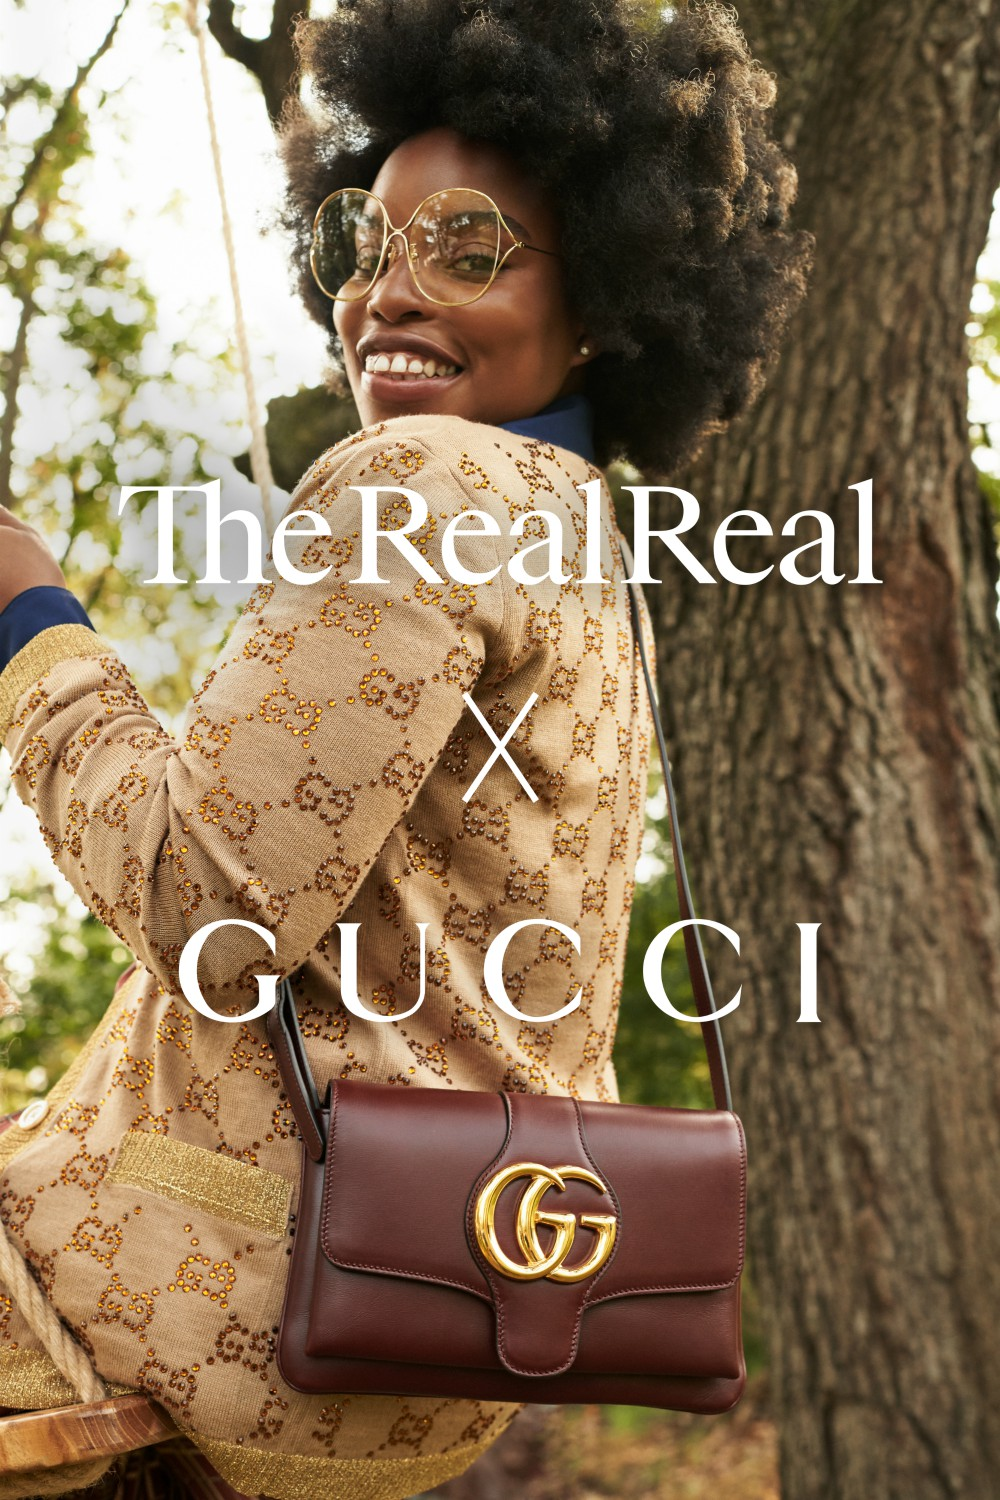 Gucci now has a dedicated fashion resale shop on luxury consignment platform The RealReal, an effort to encourage circular shopping.